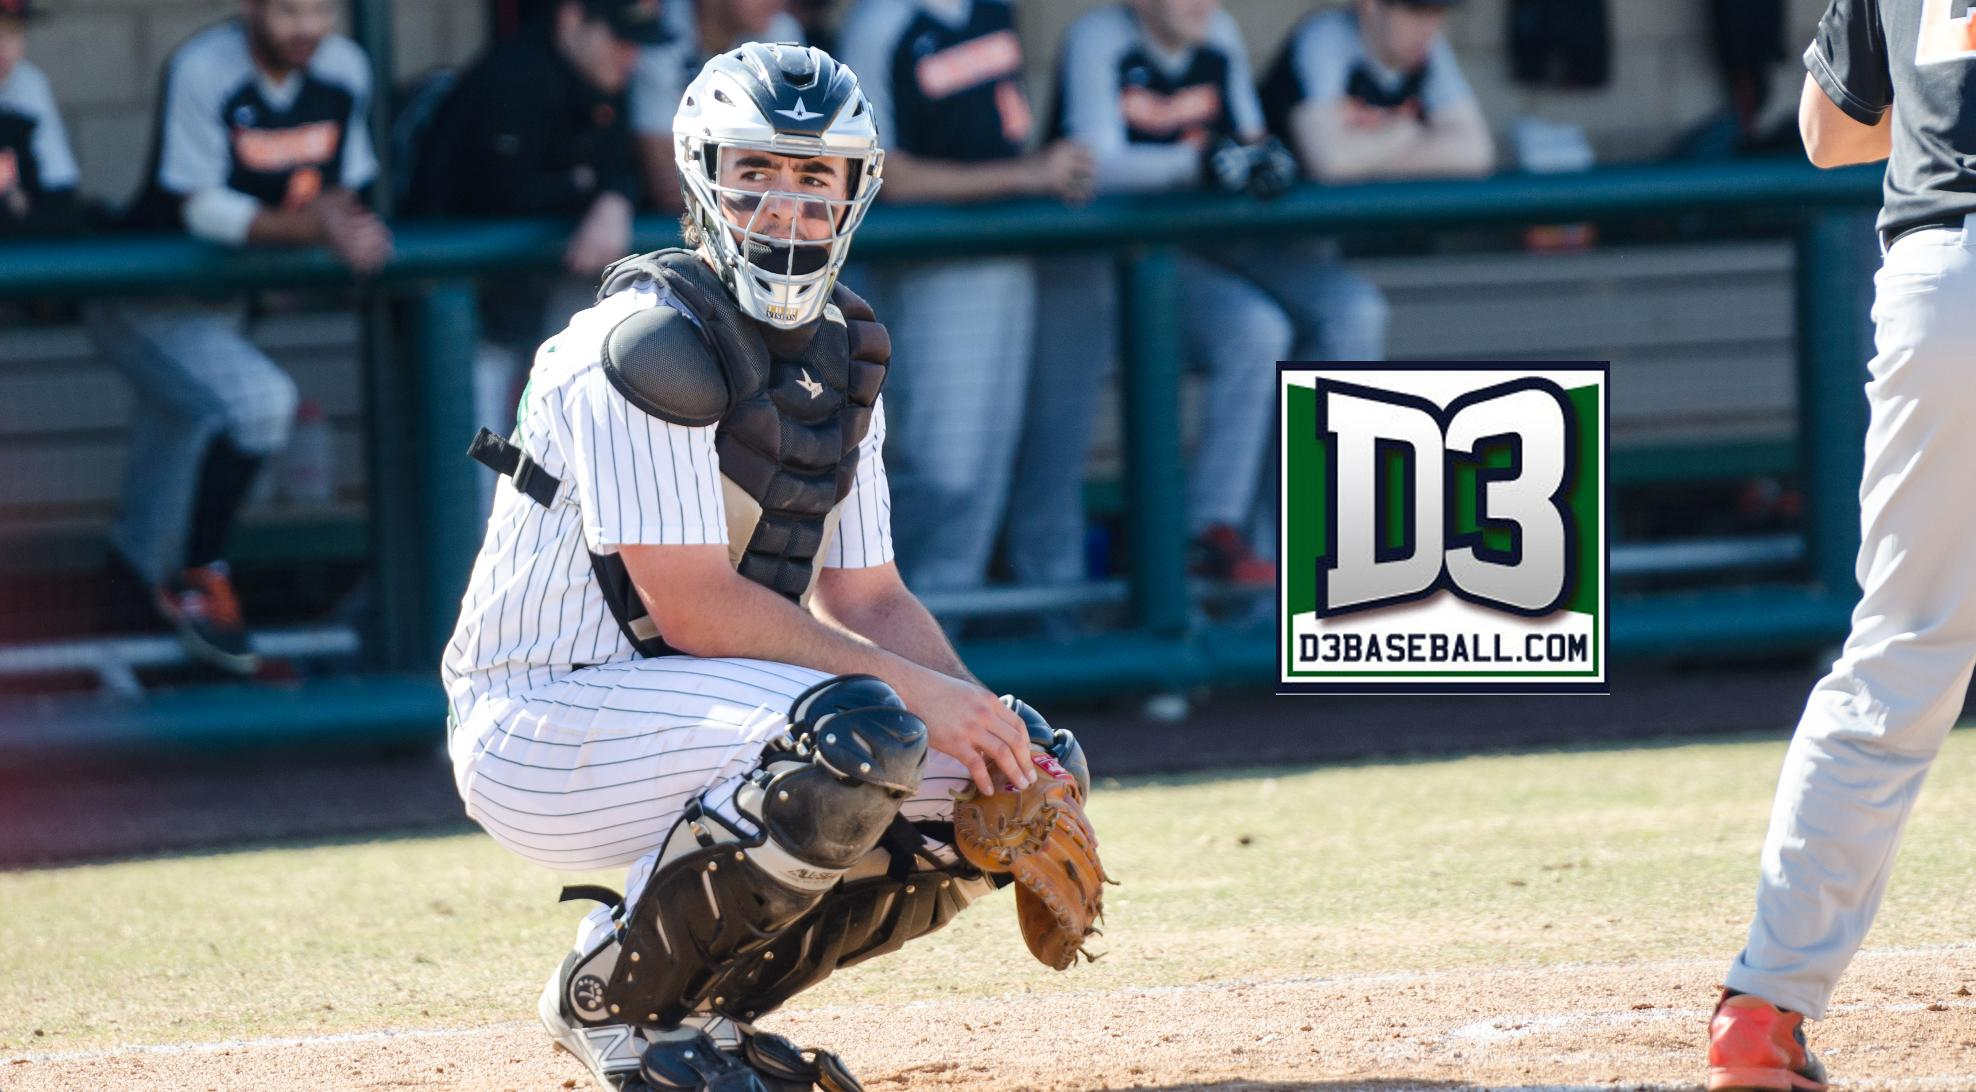 Jakob Thomas named D3baseball.com All-Region